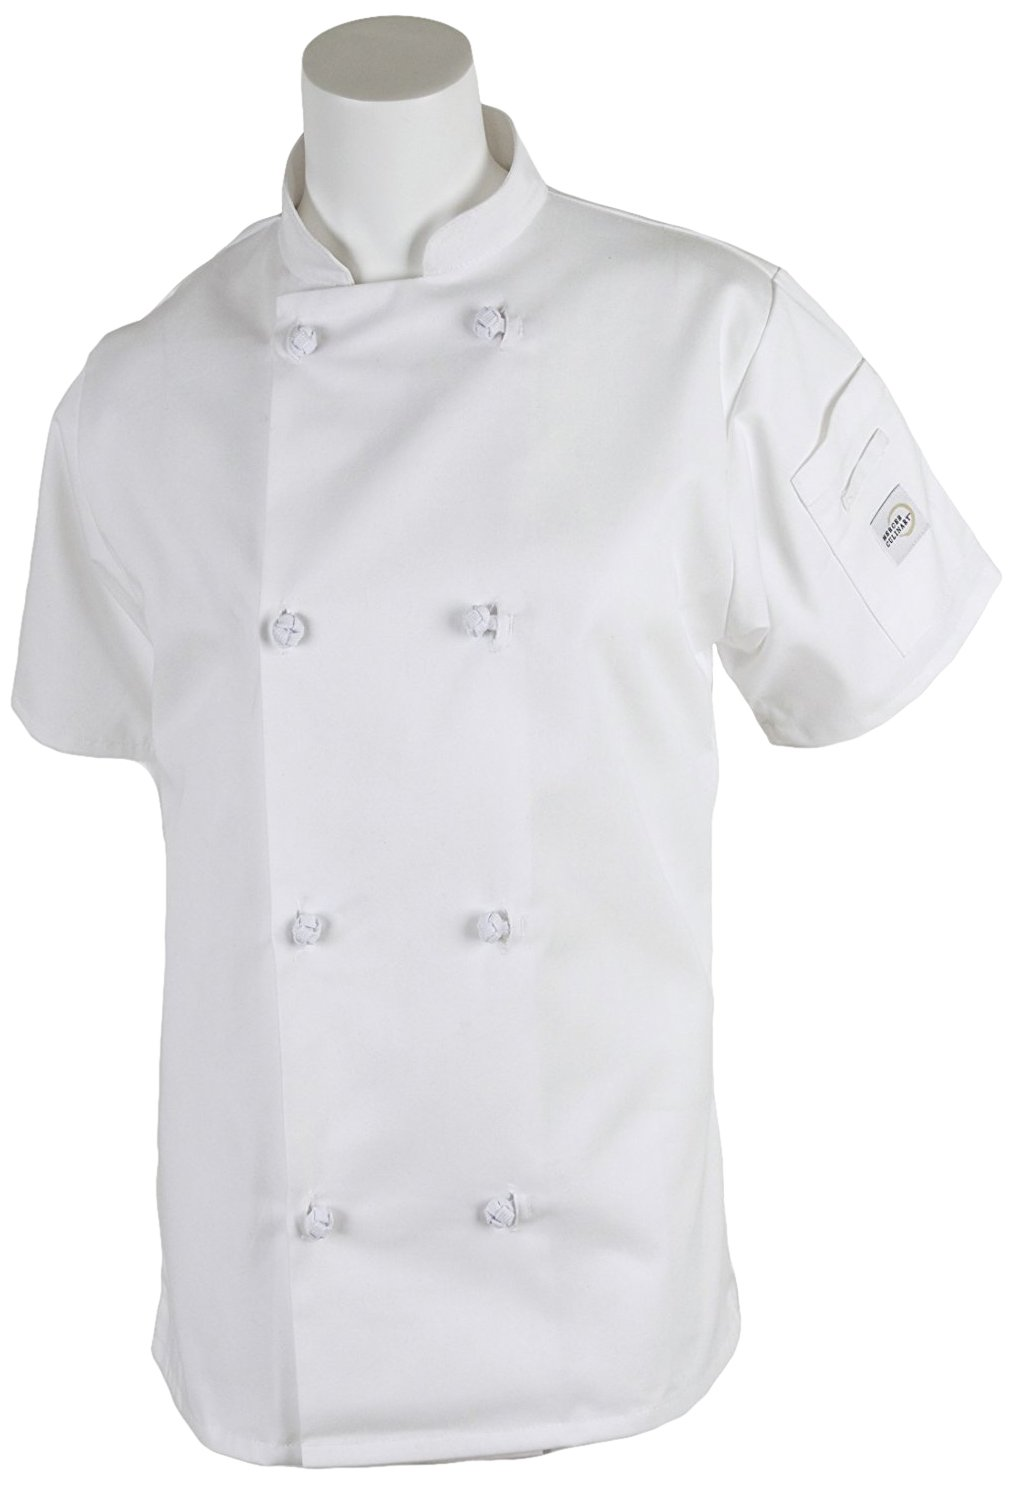 Mercer Culinary M60024WHXS Millennia Women's Short Sleeve Cook Jacket with Cloth Knot Buttons, X-Small, White